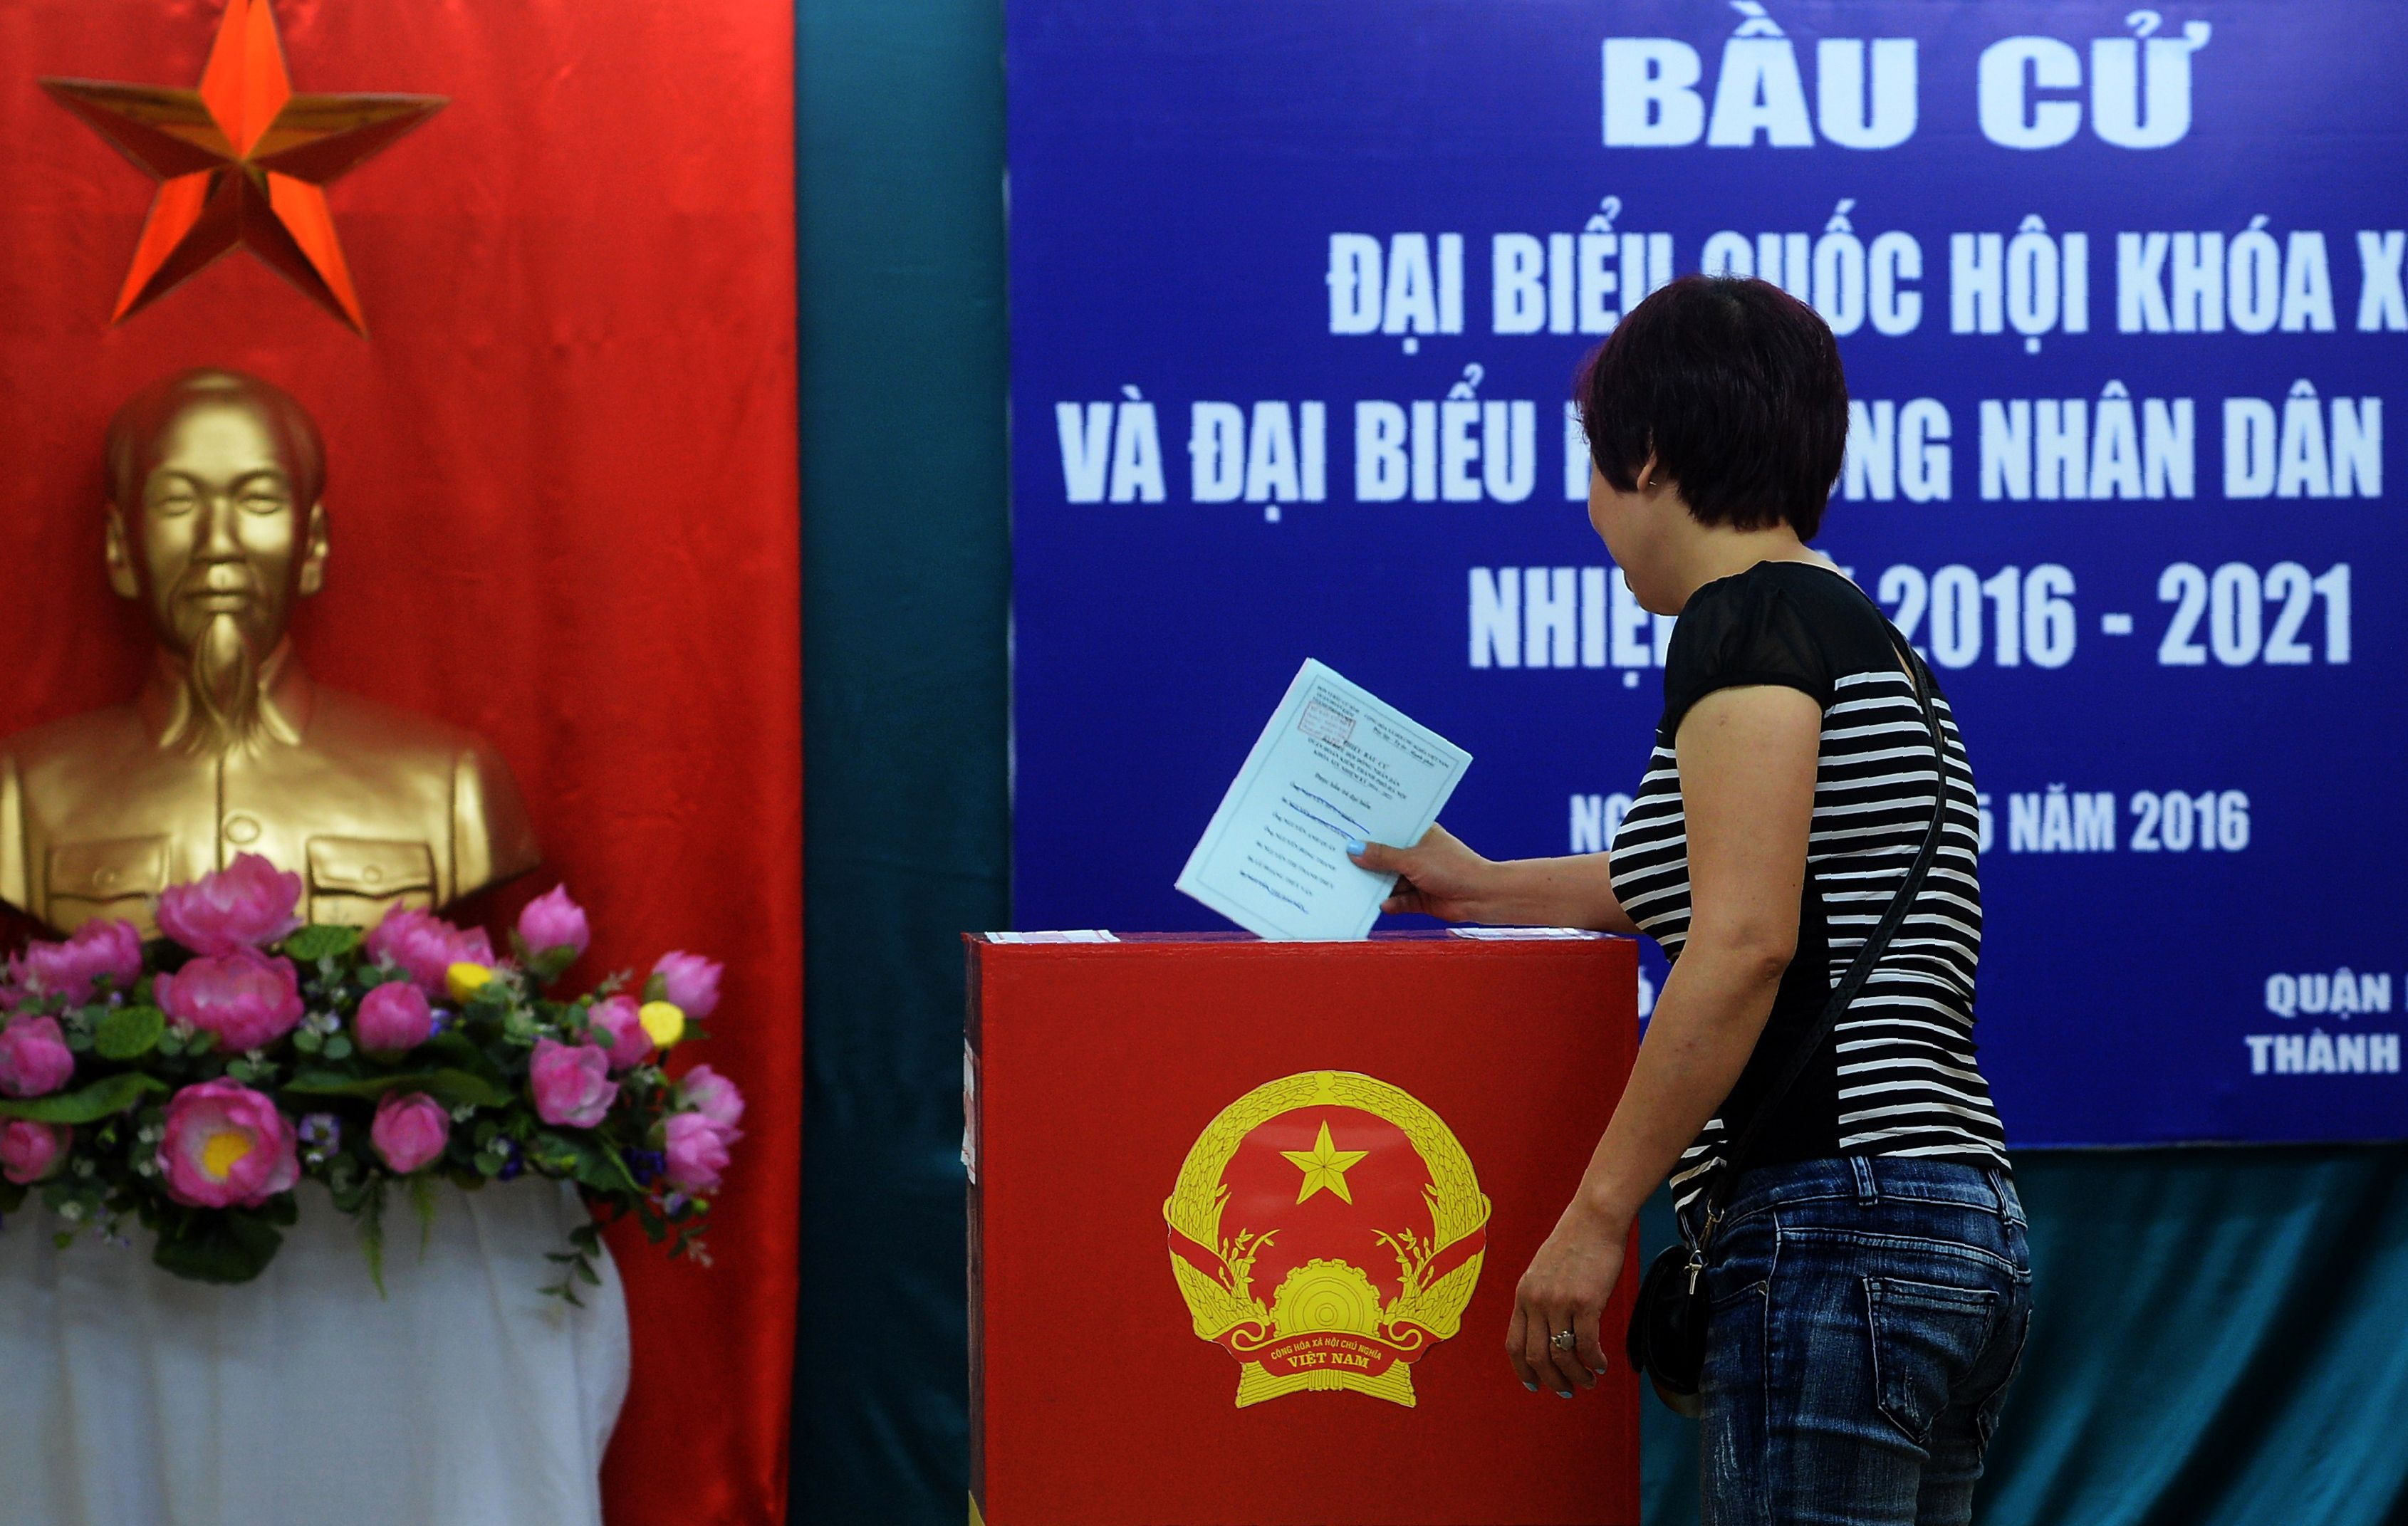 A woman casts her ballot at a local voting station in Hanoi on May 22, 2016